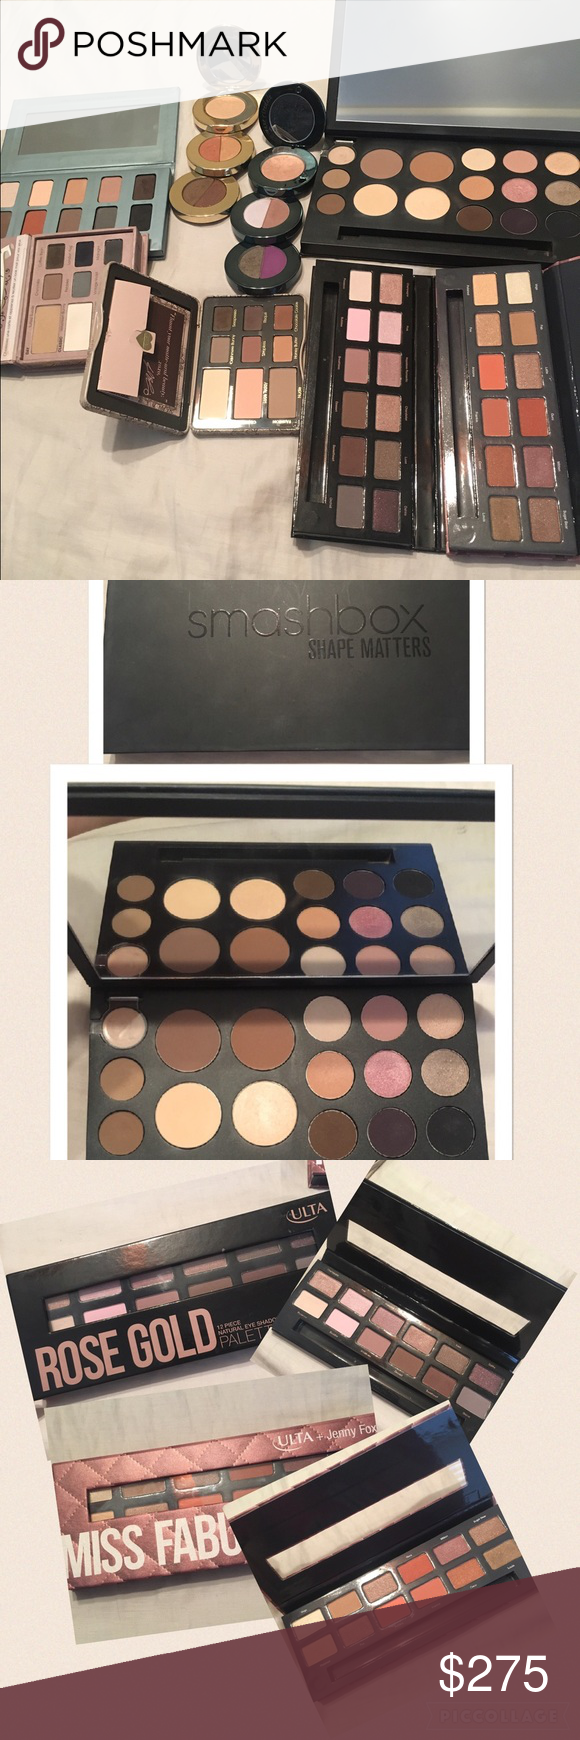 Palettes!! Smashbox Too Faced Stila Ulta And more You get